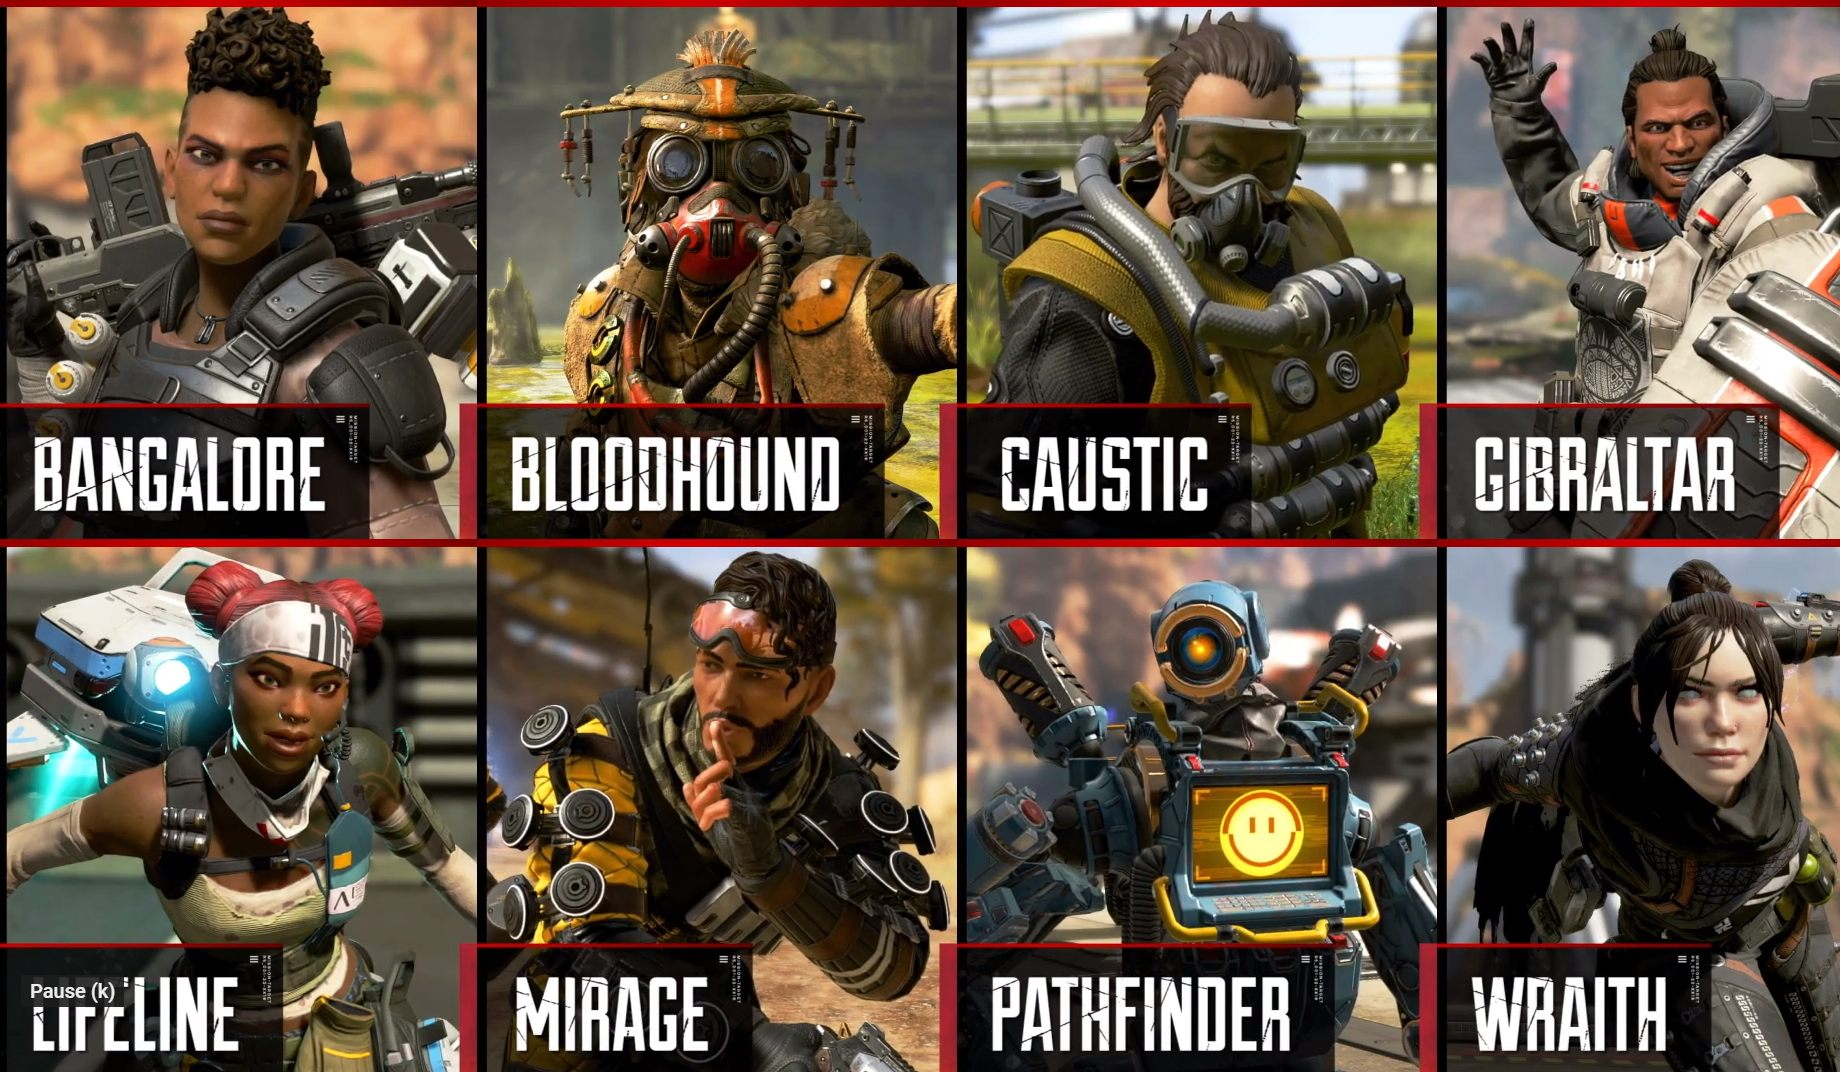 legend-characters-apex-legends-roster.jp